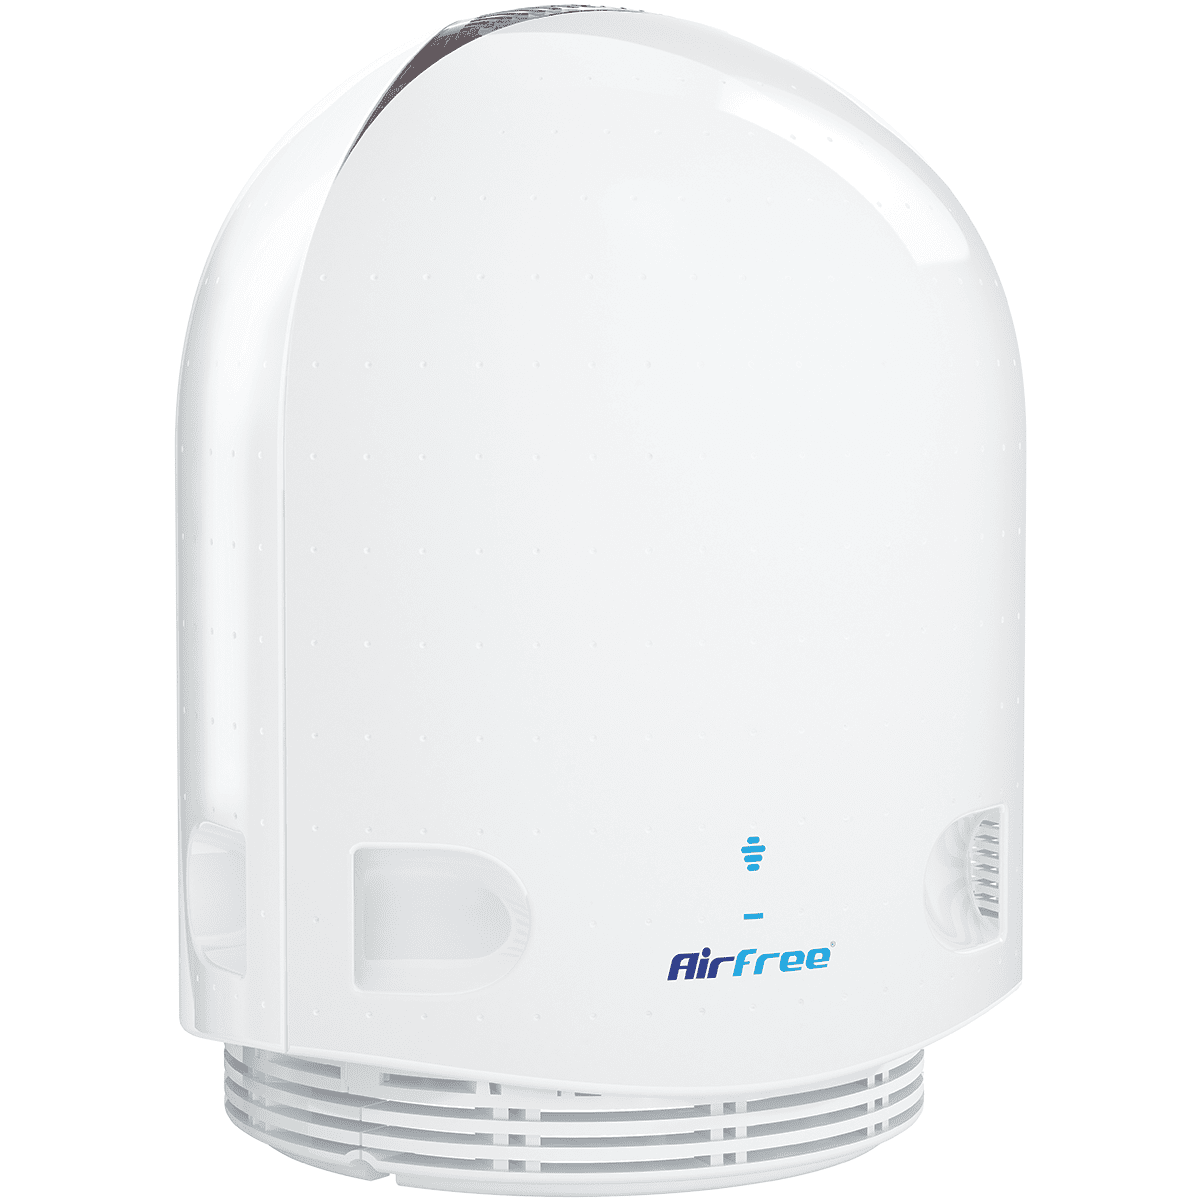 Image of Airfree P1000 Air Purifier